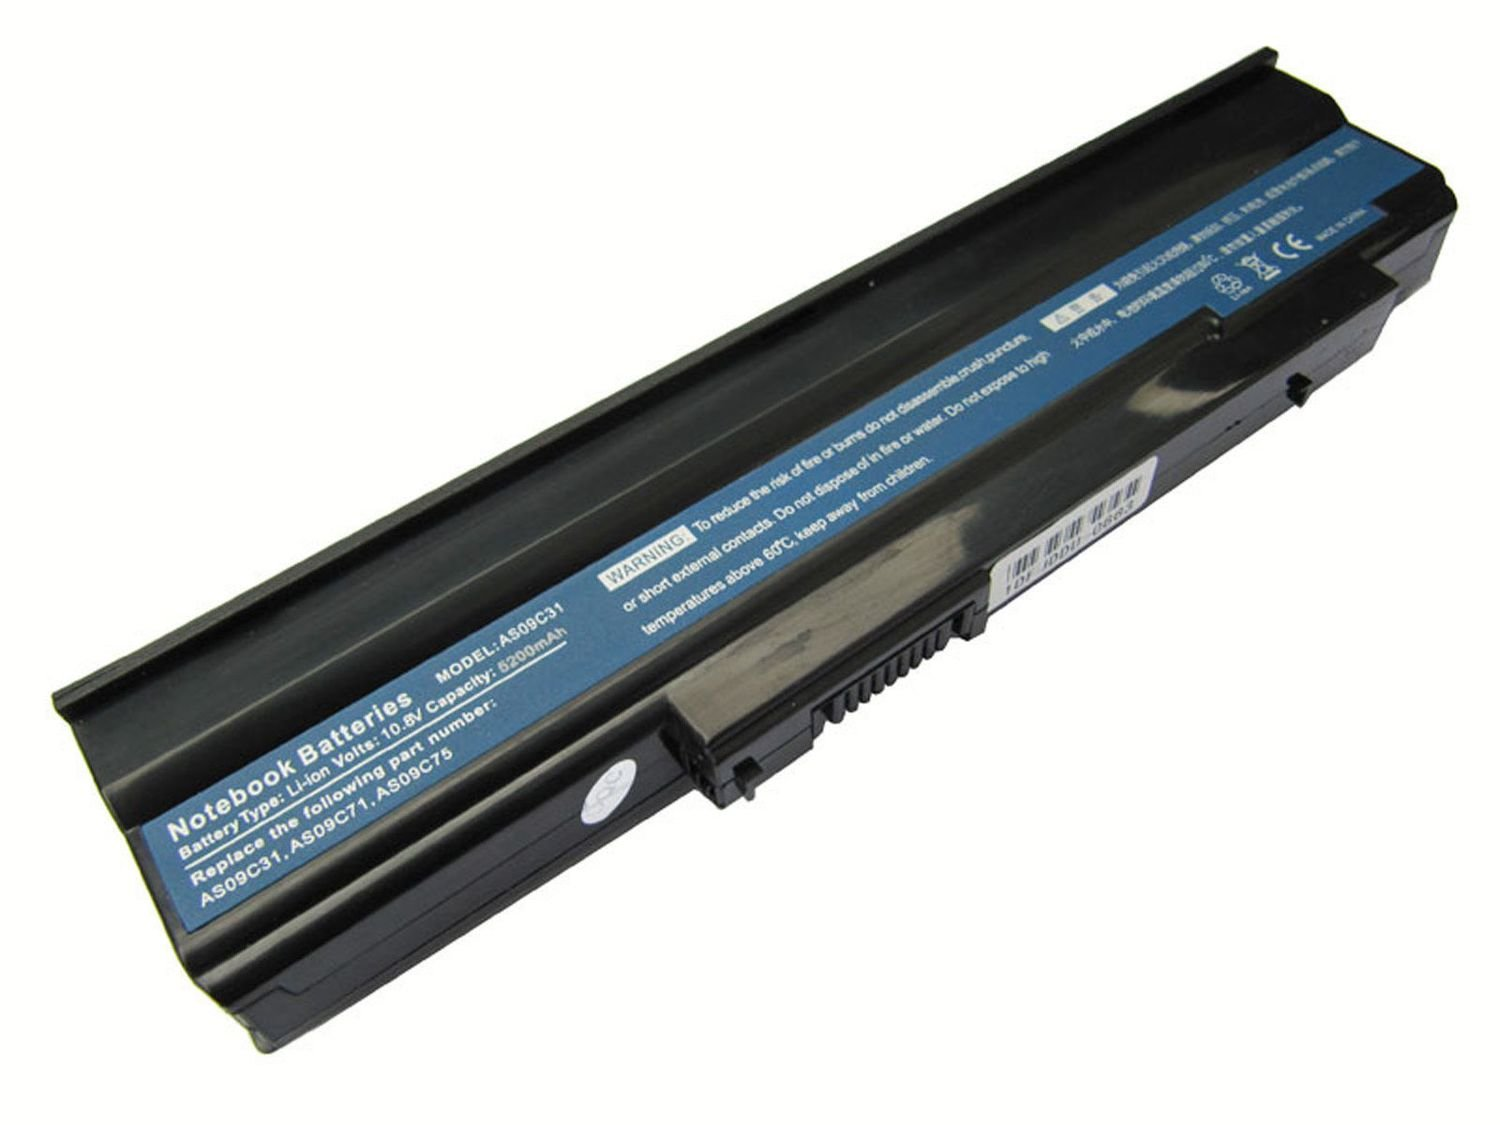 Acer-Extensa-5235-5635-gateway-NV4000-NV4400-NV4800-laptop-battery